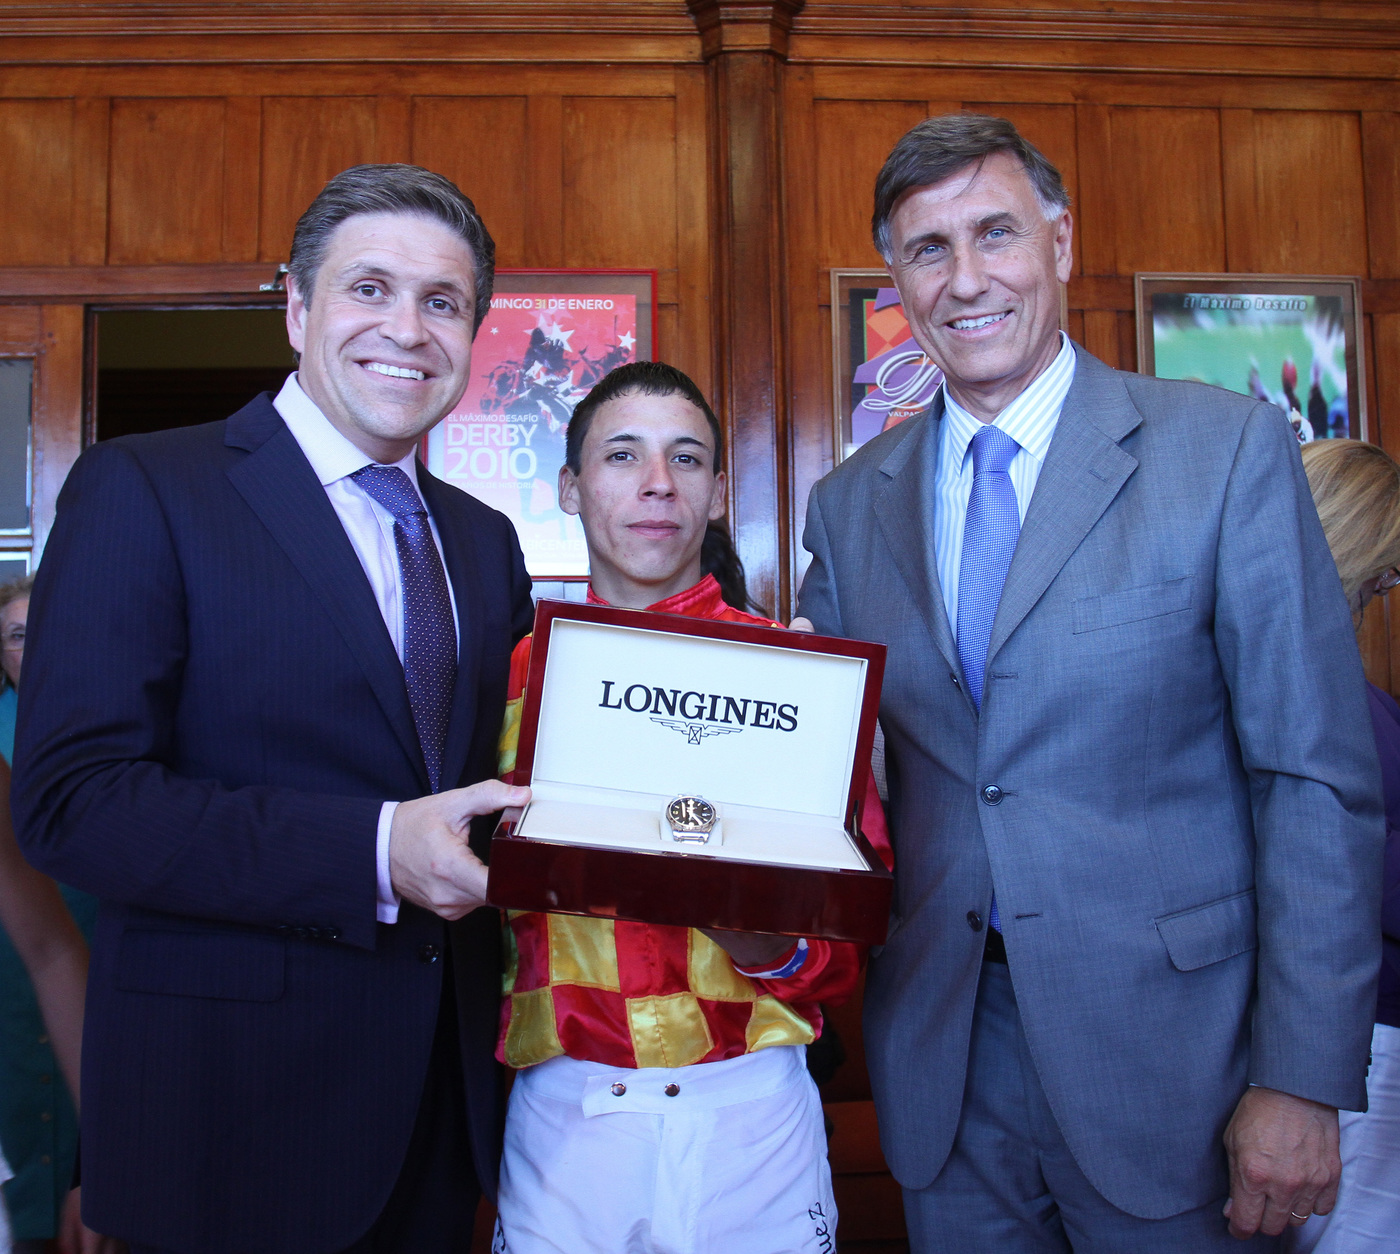 Longines Flat Racing Event: Longines becomes the Official Partner of OSAF and of the Longines Gran Premio Latinoamericano 4